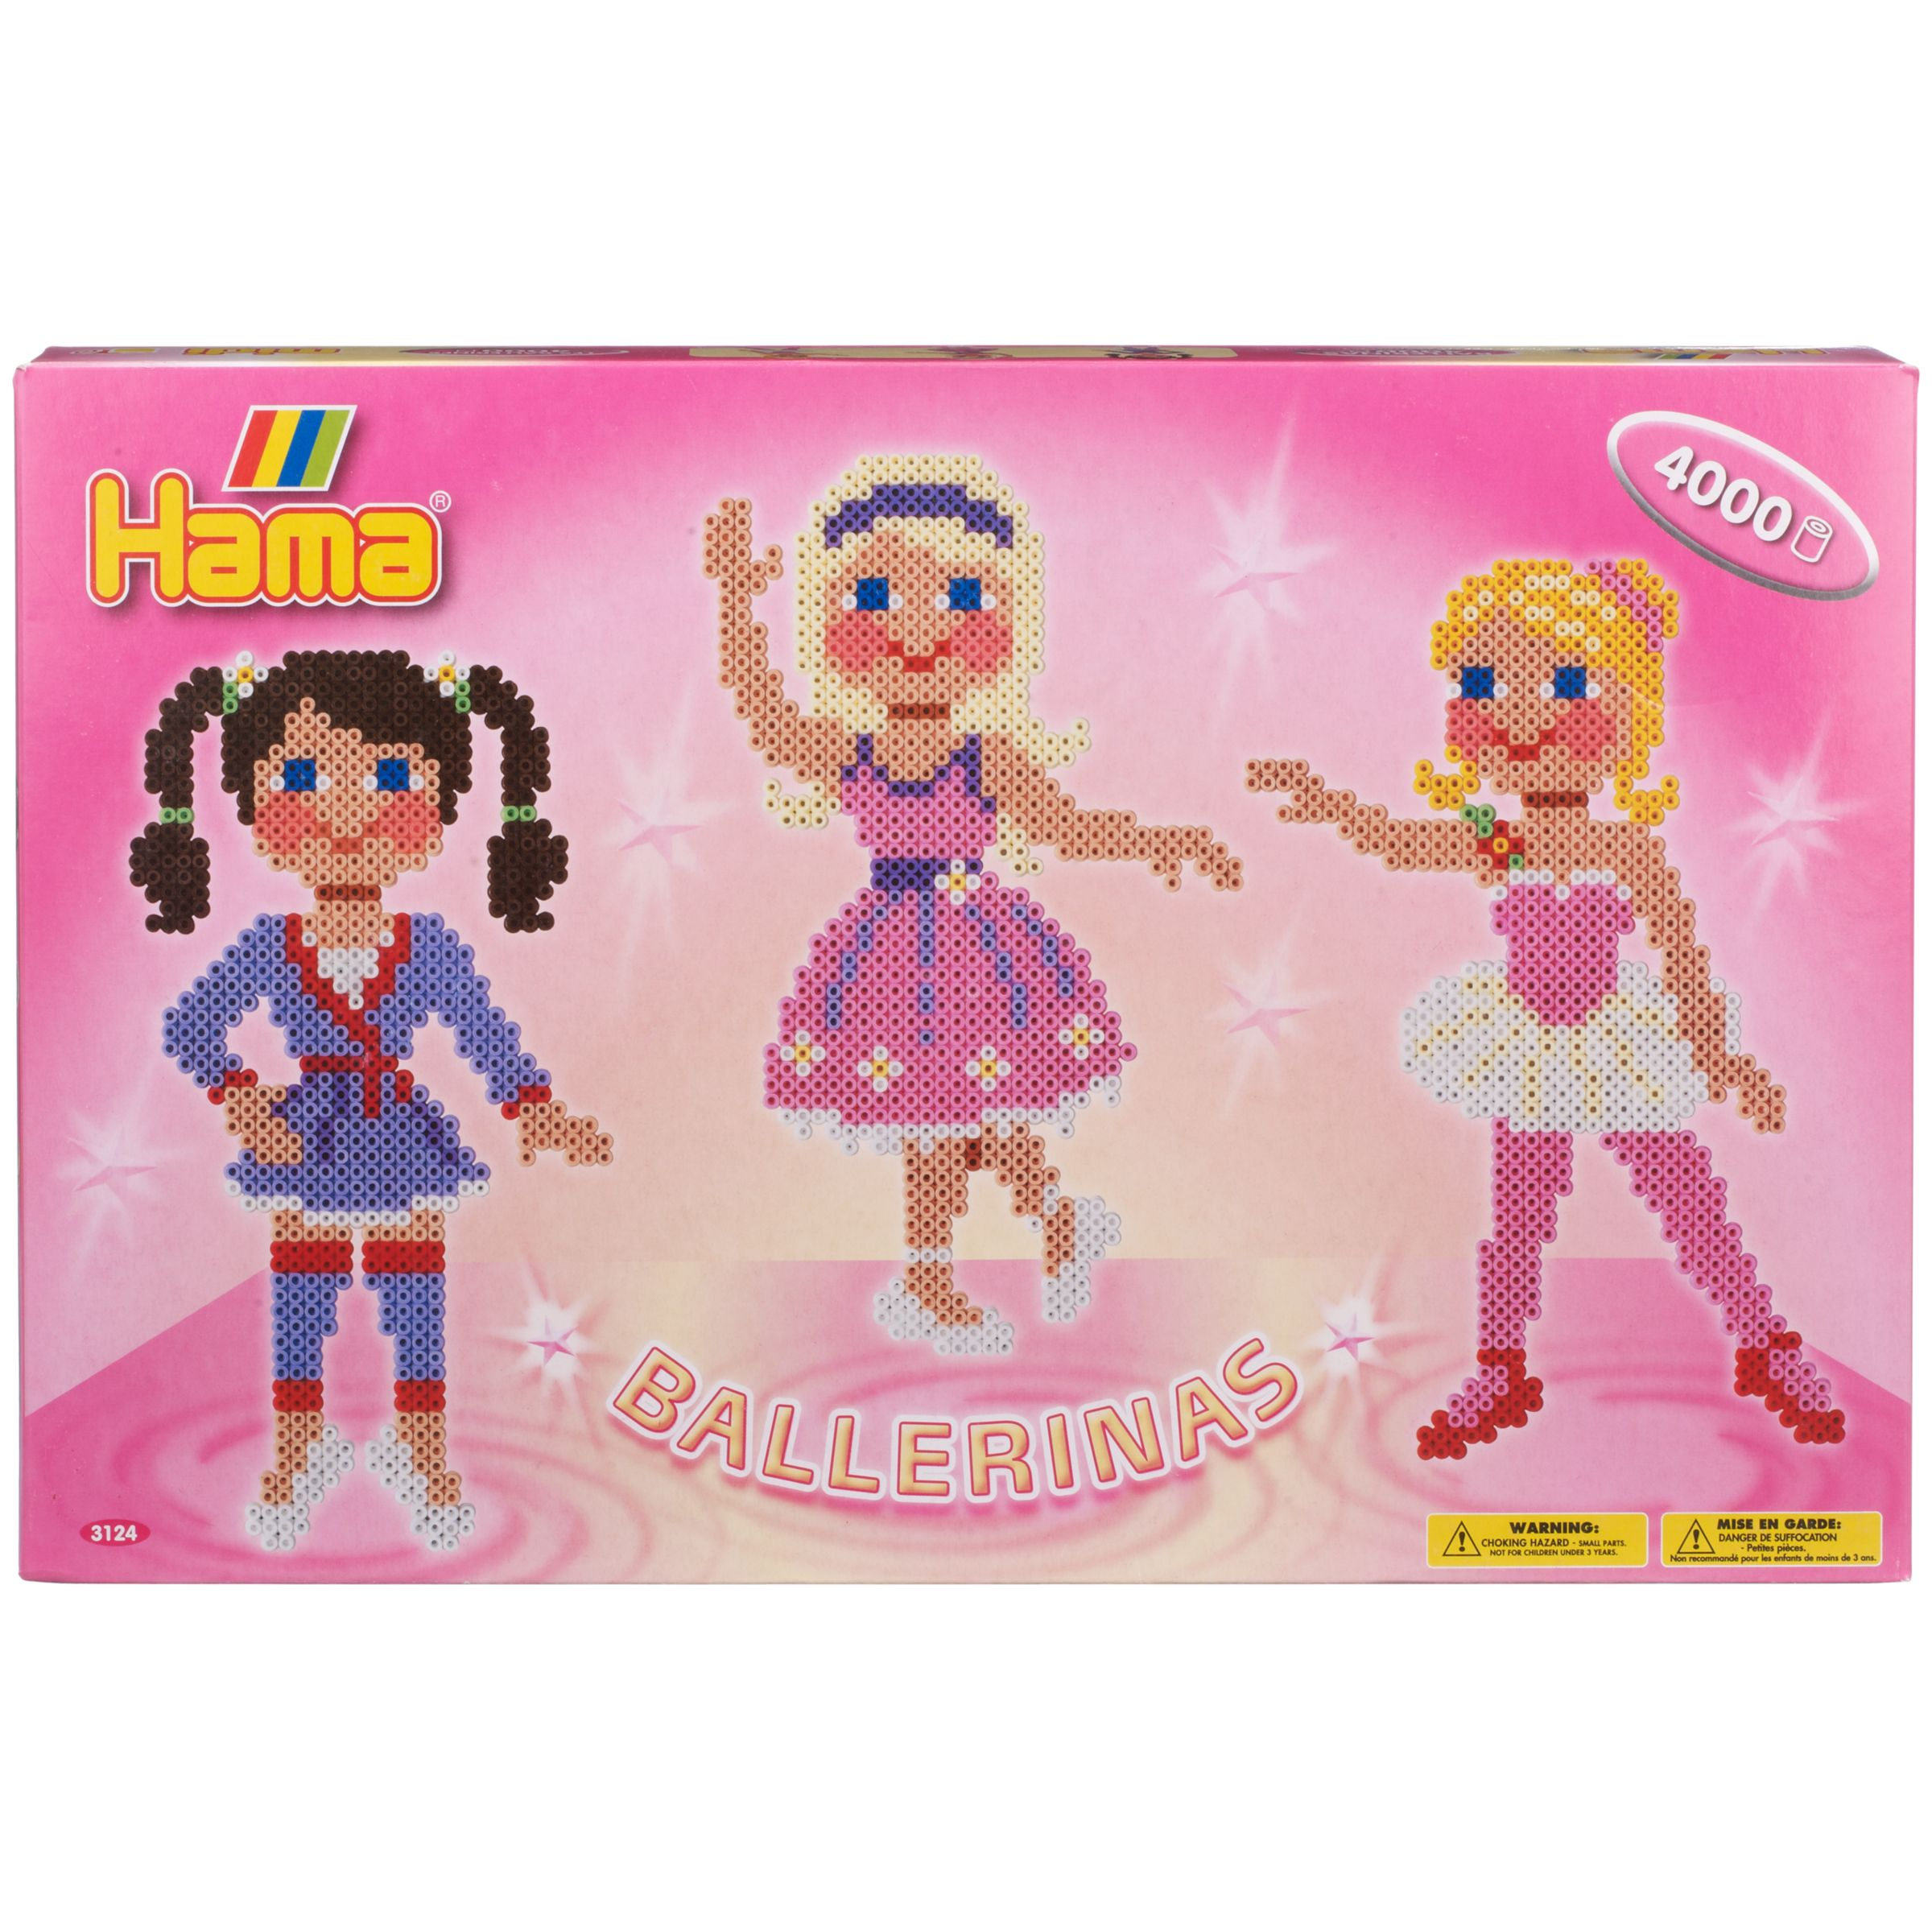 Hama Beads Ballerinas